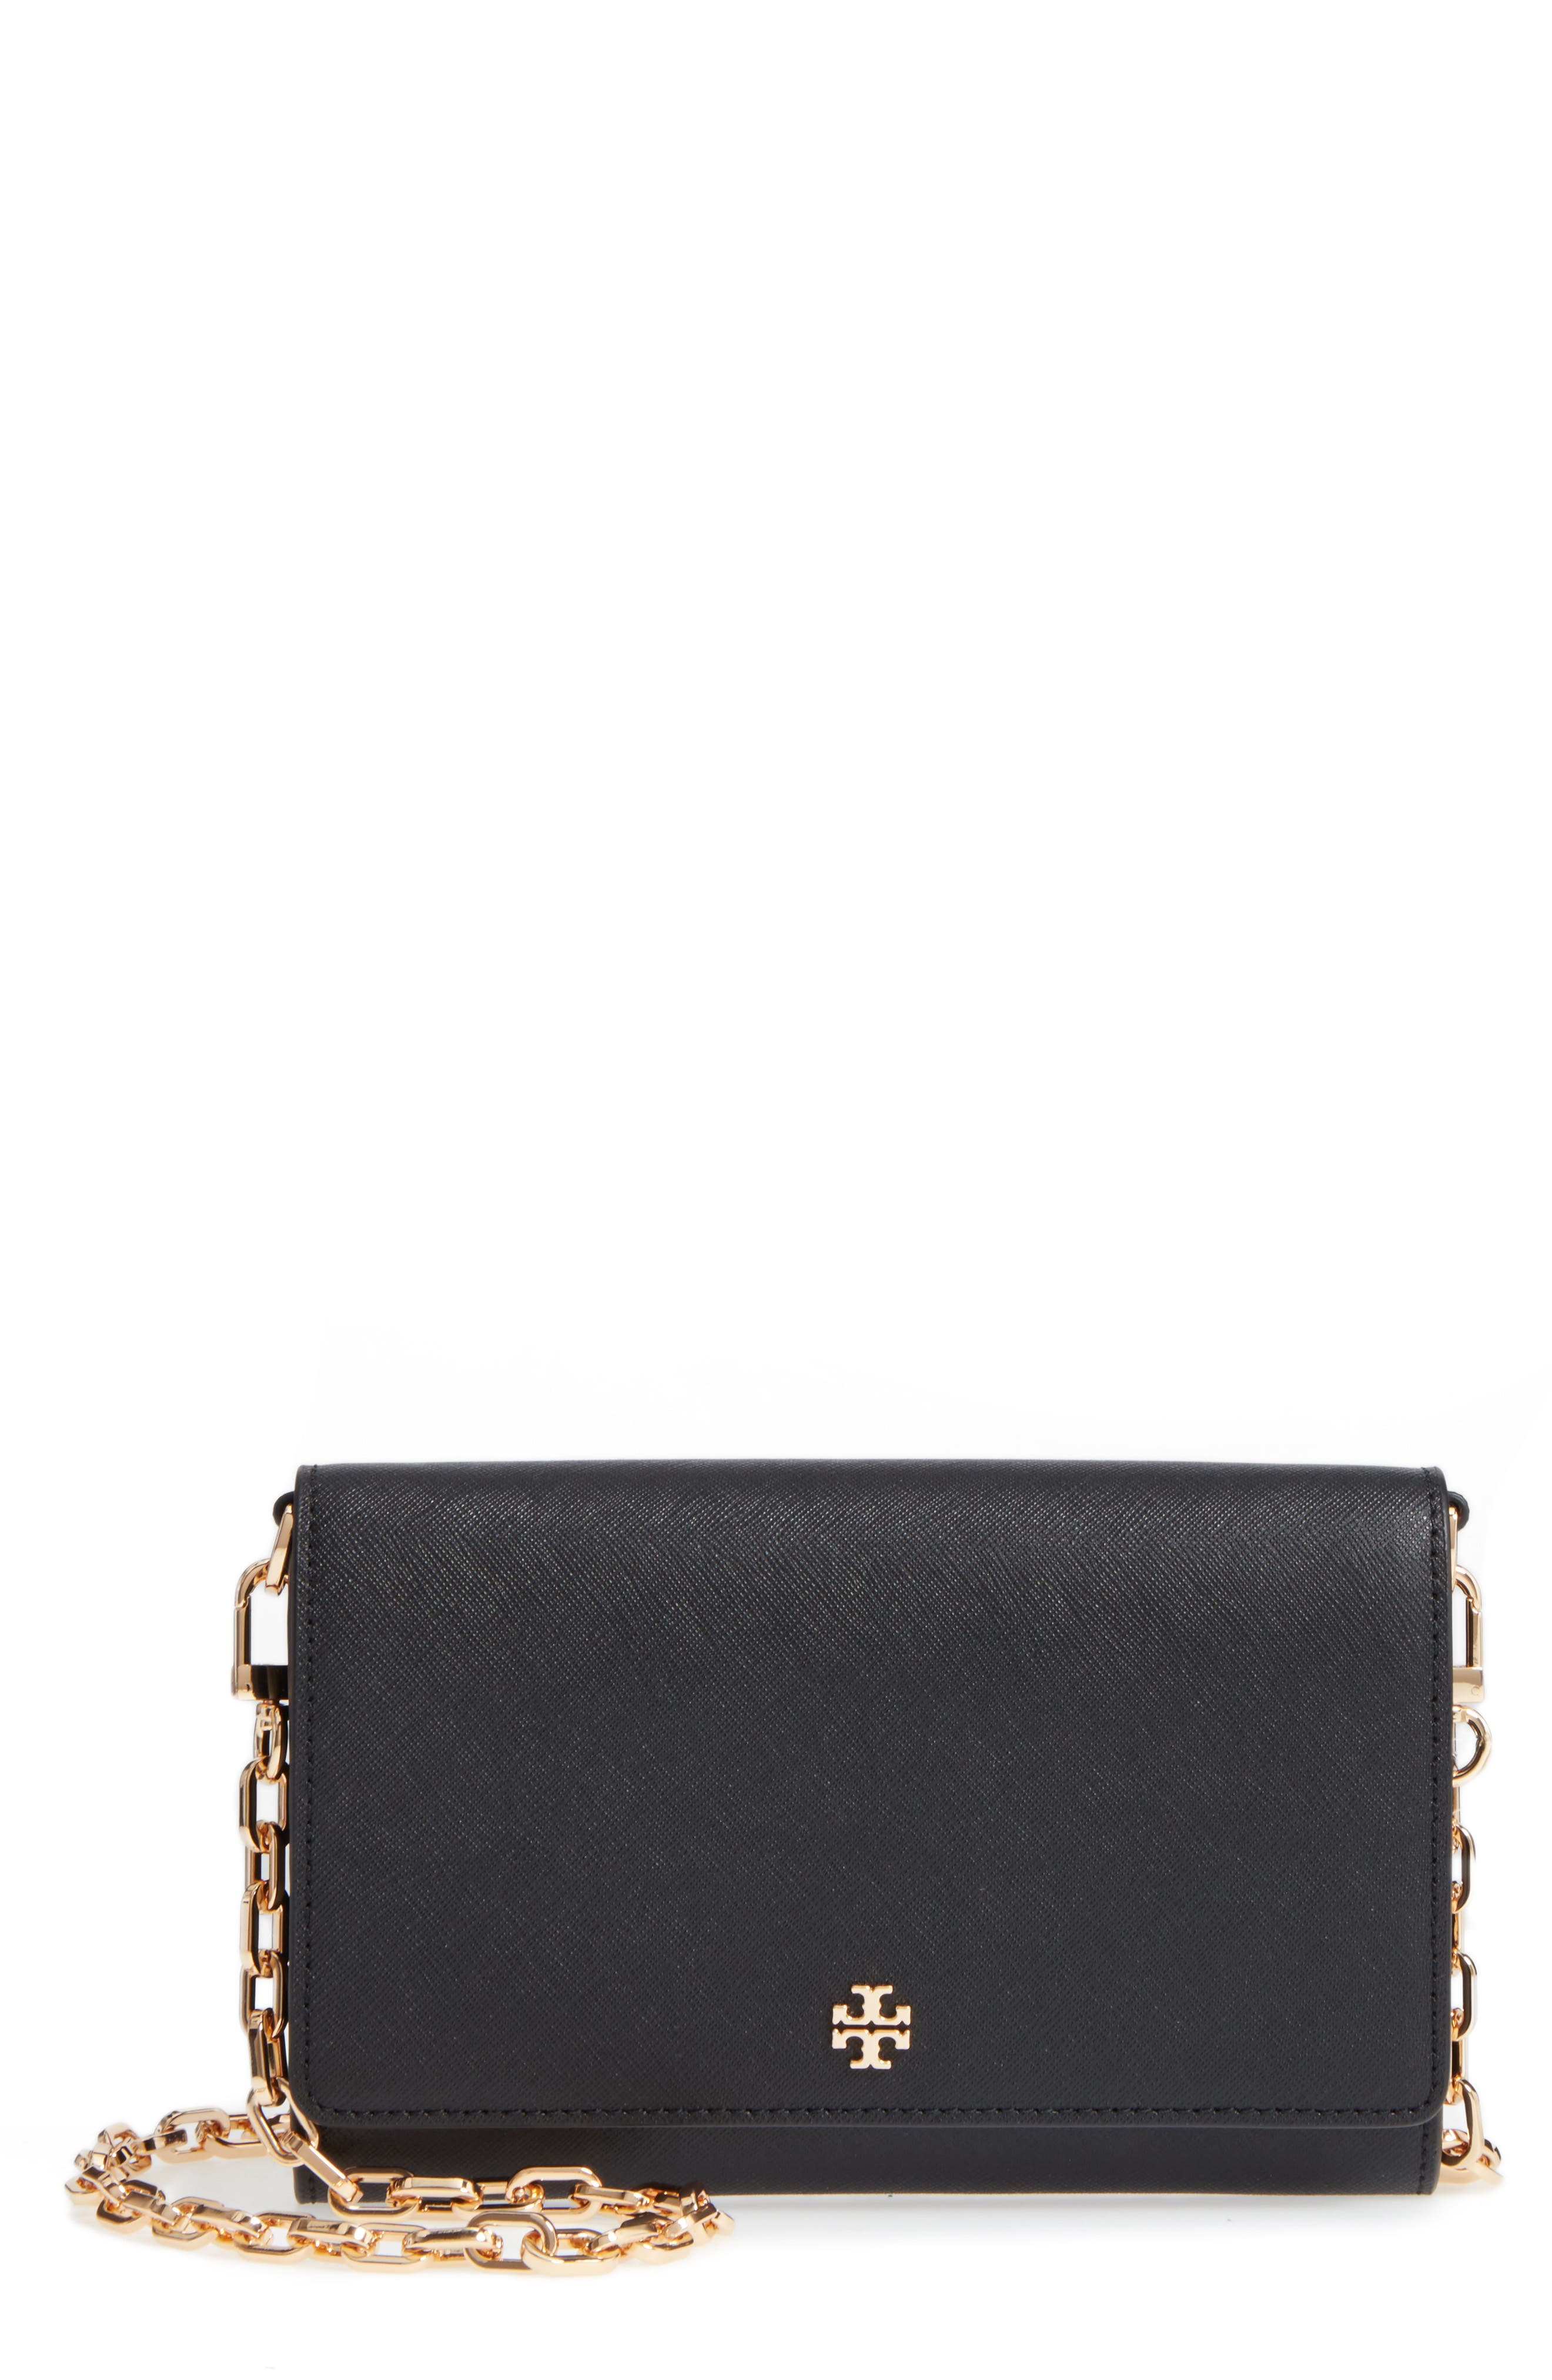 TORY BURCH, 'Robinson' Leather Wallet on a Chain, Main thumbnail 1, color, 001